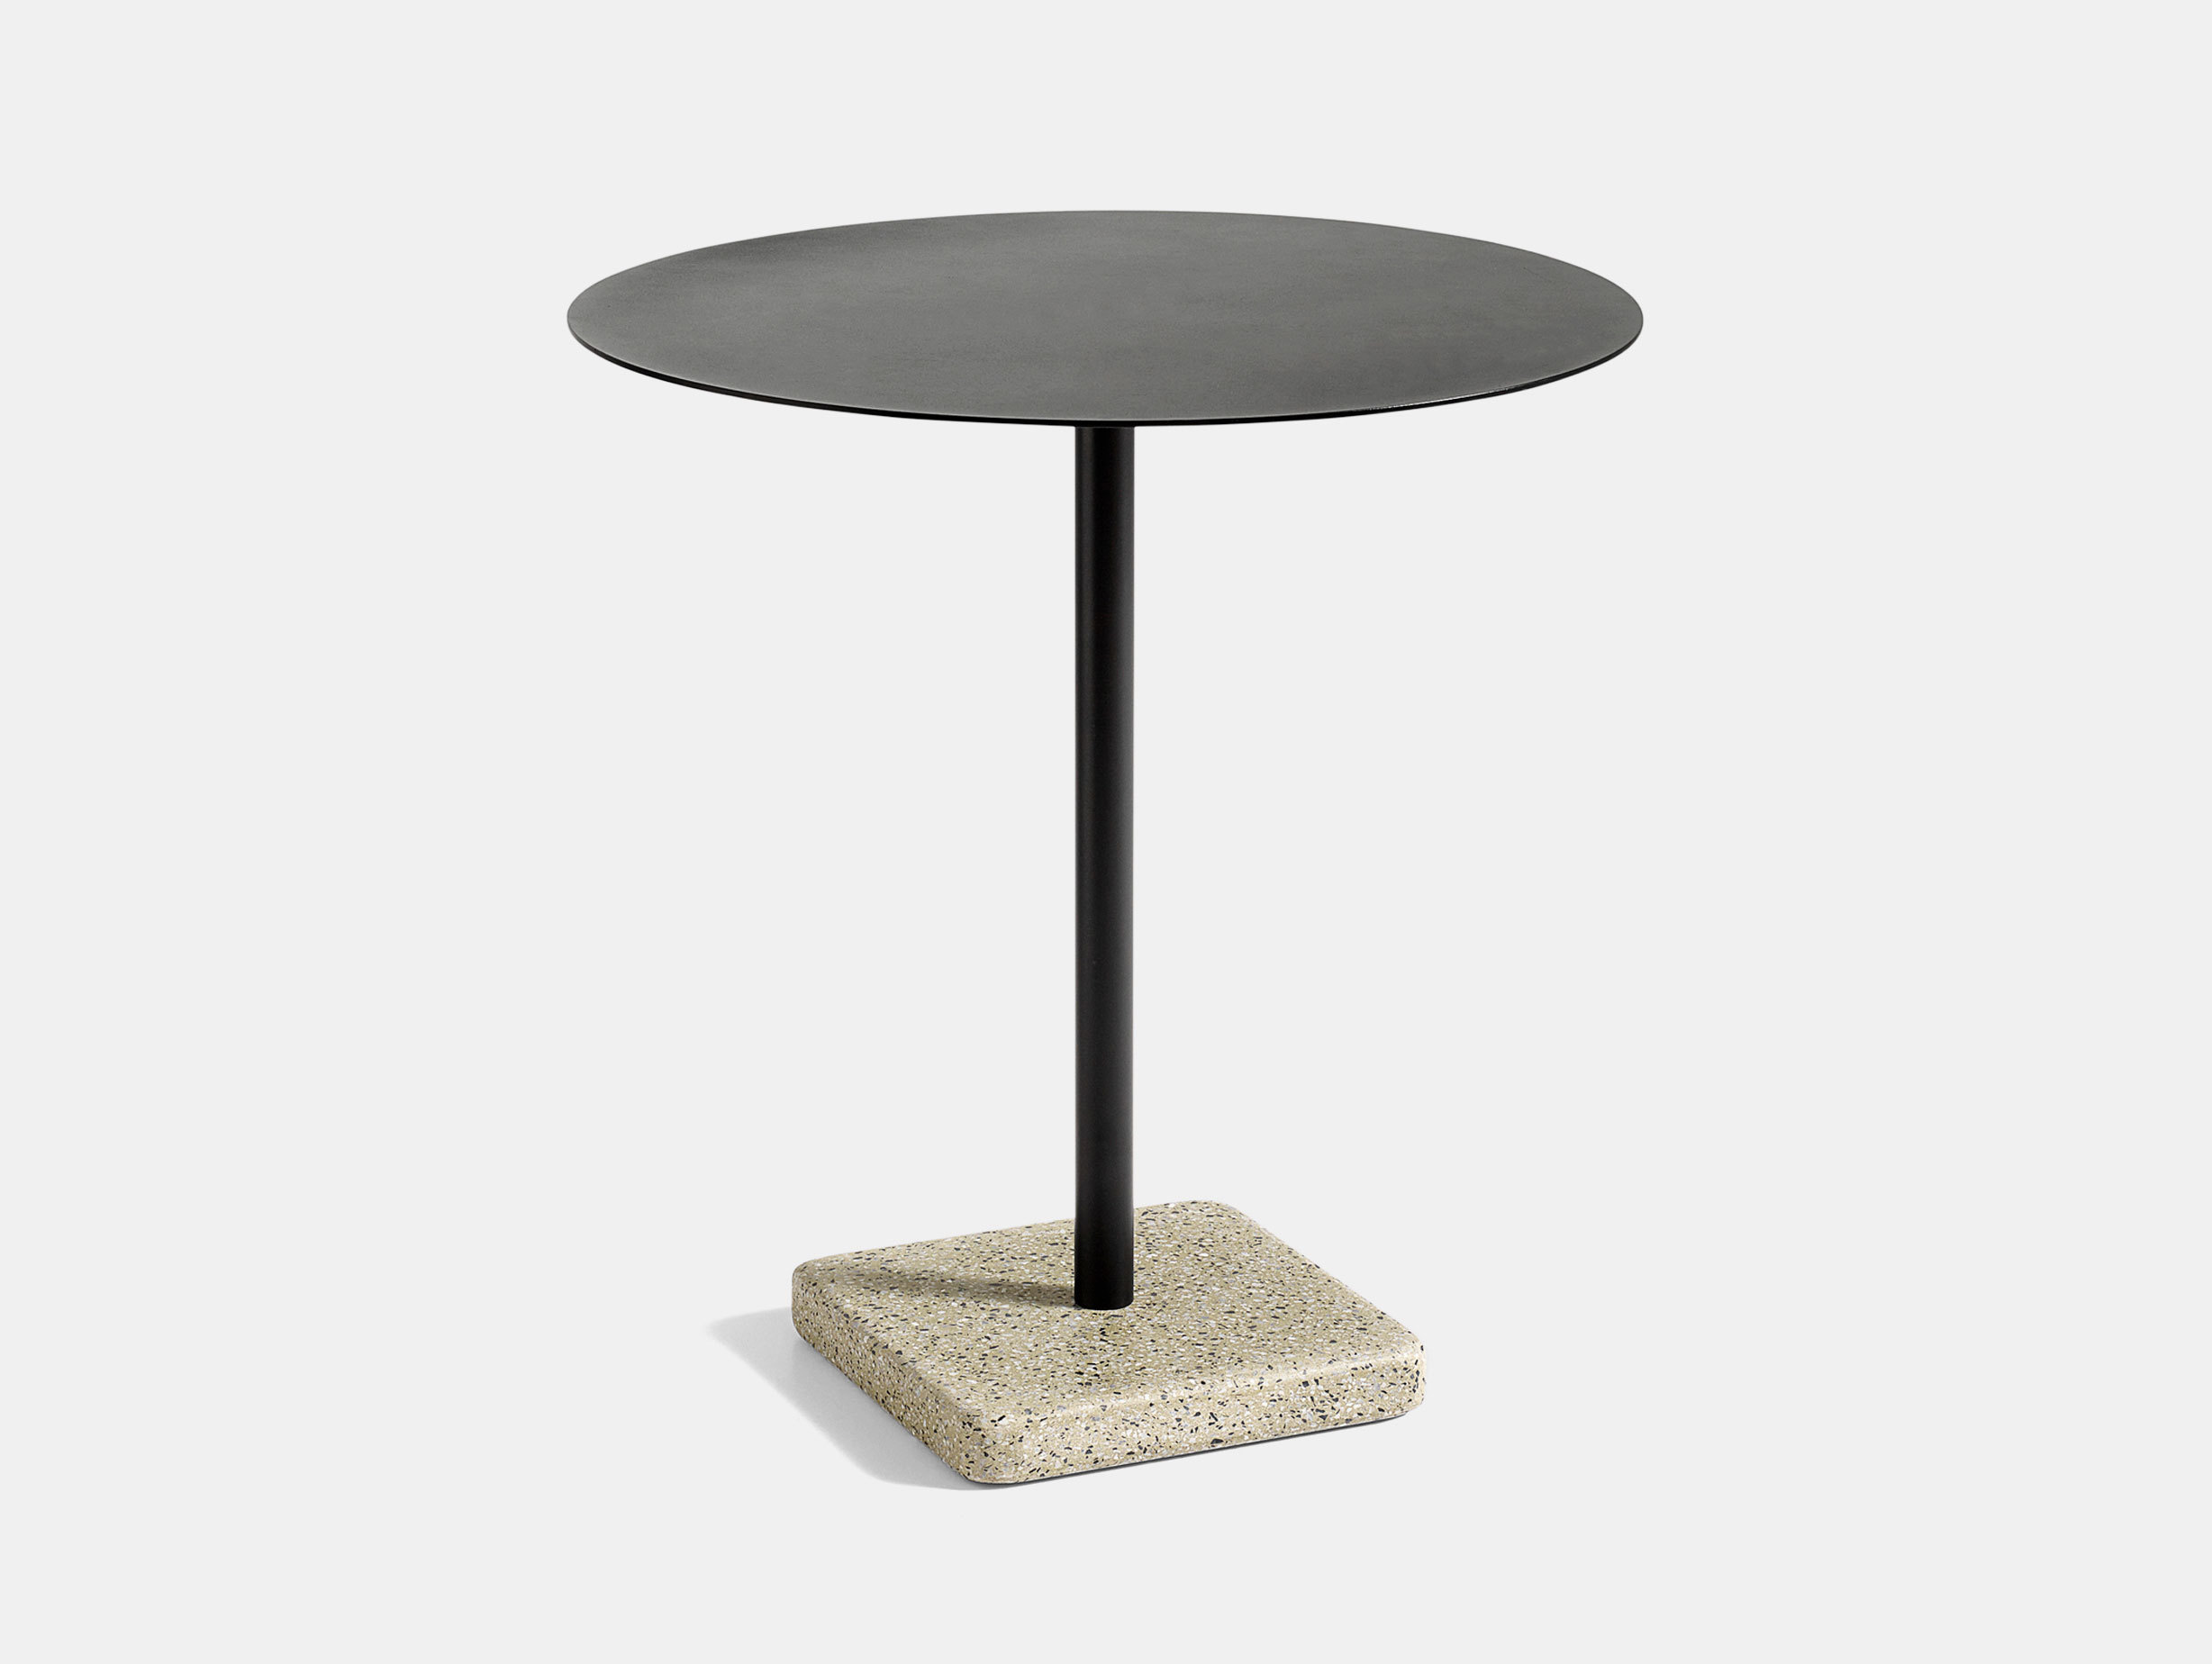 Hay Terrazzo Table Round Yellow Base Charcoal Top Daniel Enoksson